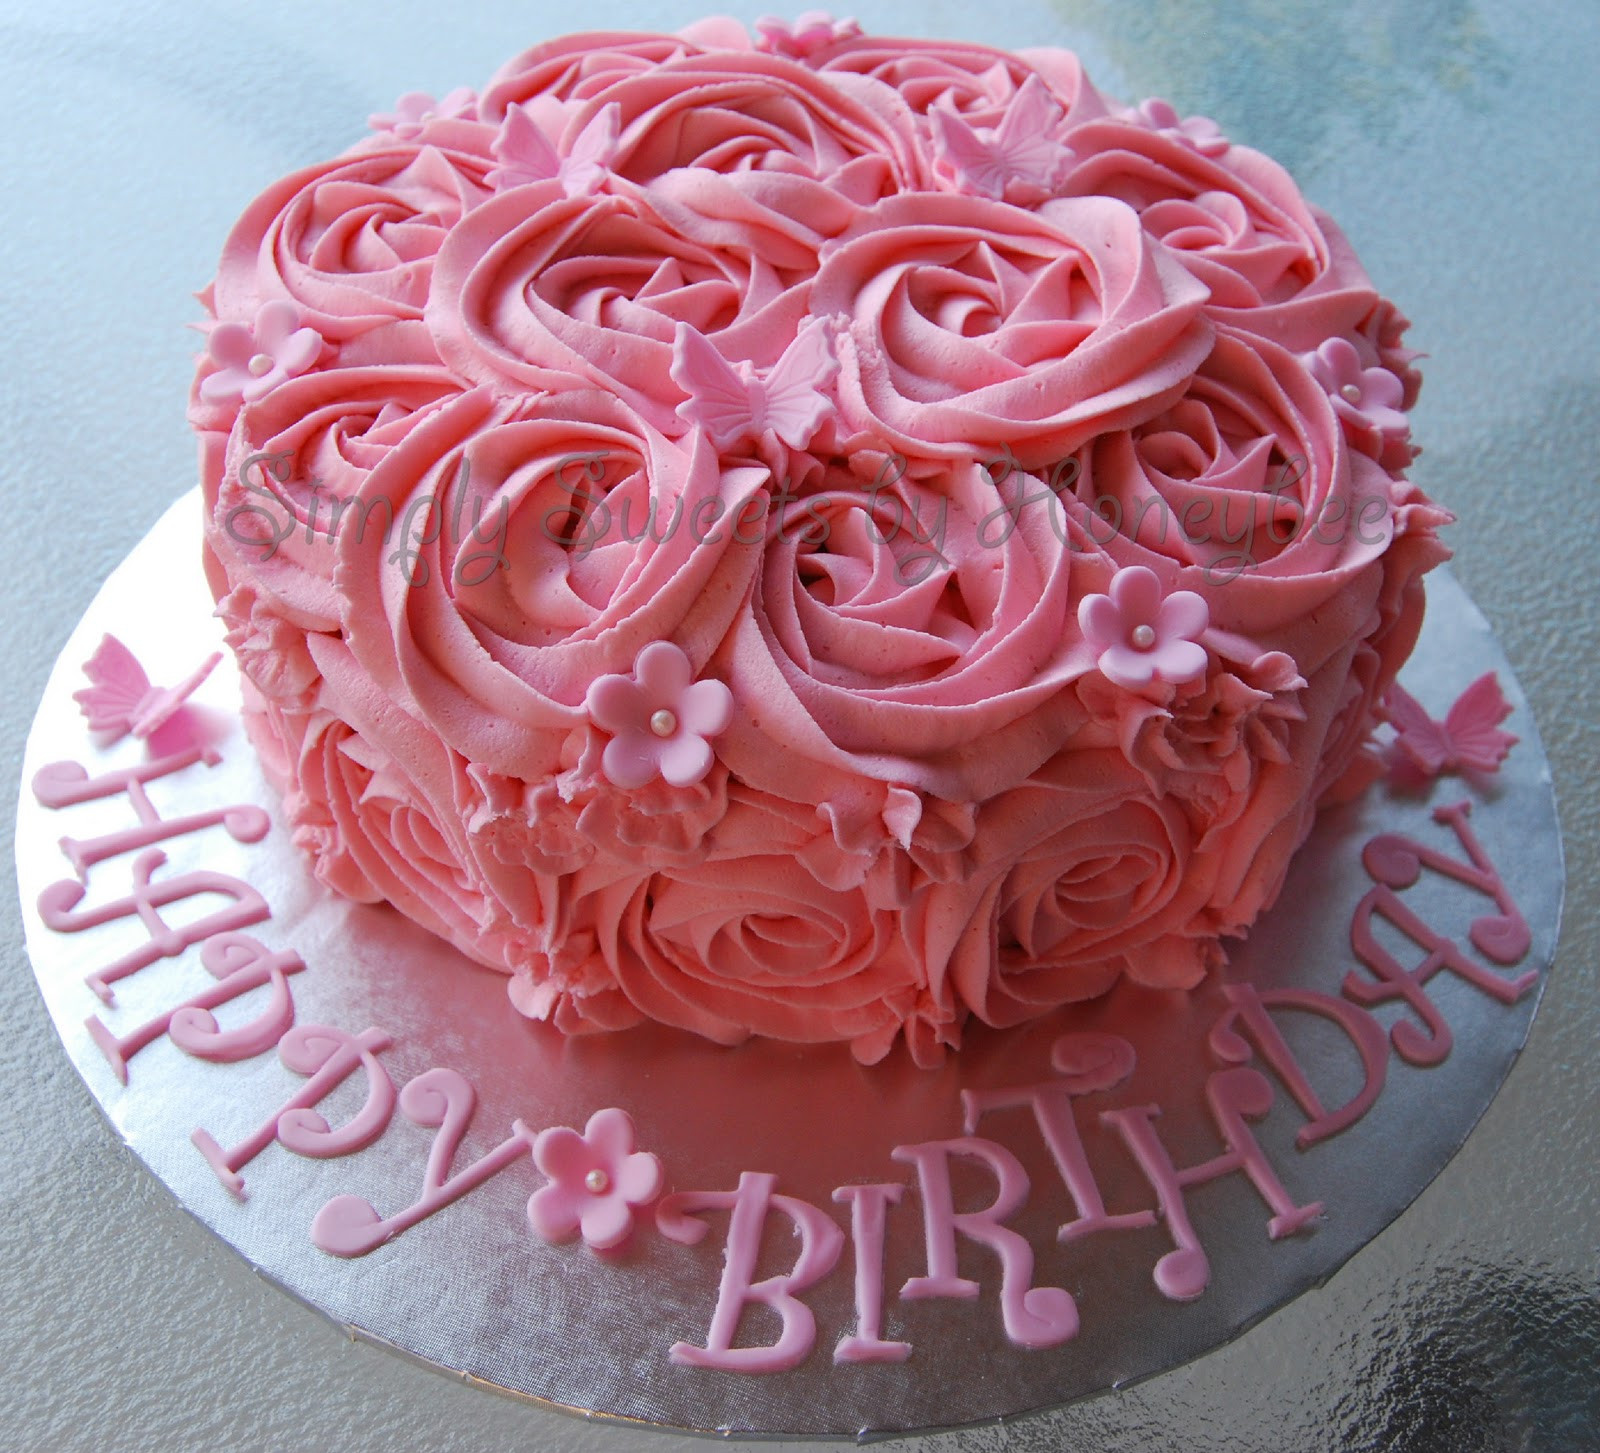 Best ideas about Rose Birthday Cake . Save or Pin Two Birthday Cakes simplysweetsbyhoneybee Now.